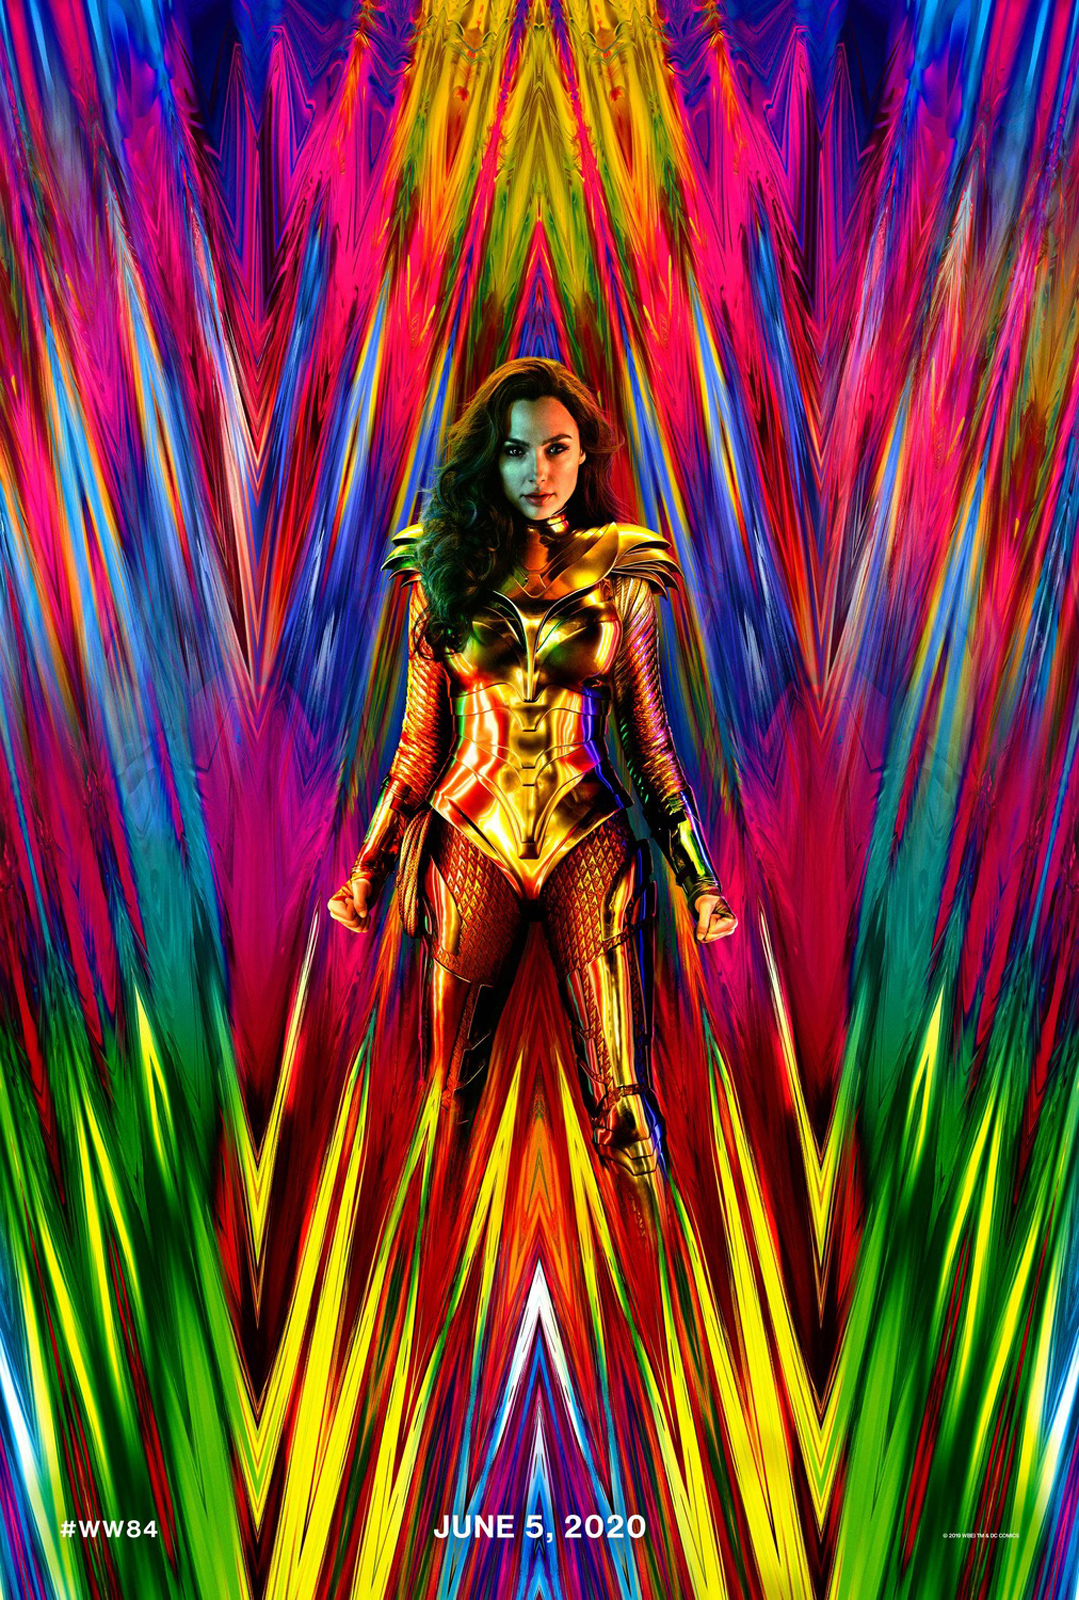 Wonder Woman 1984 streaming